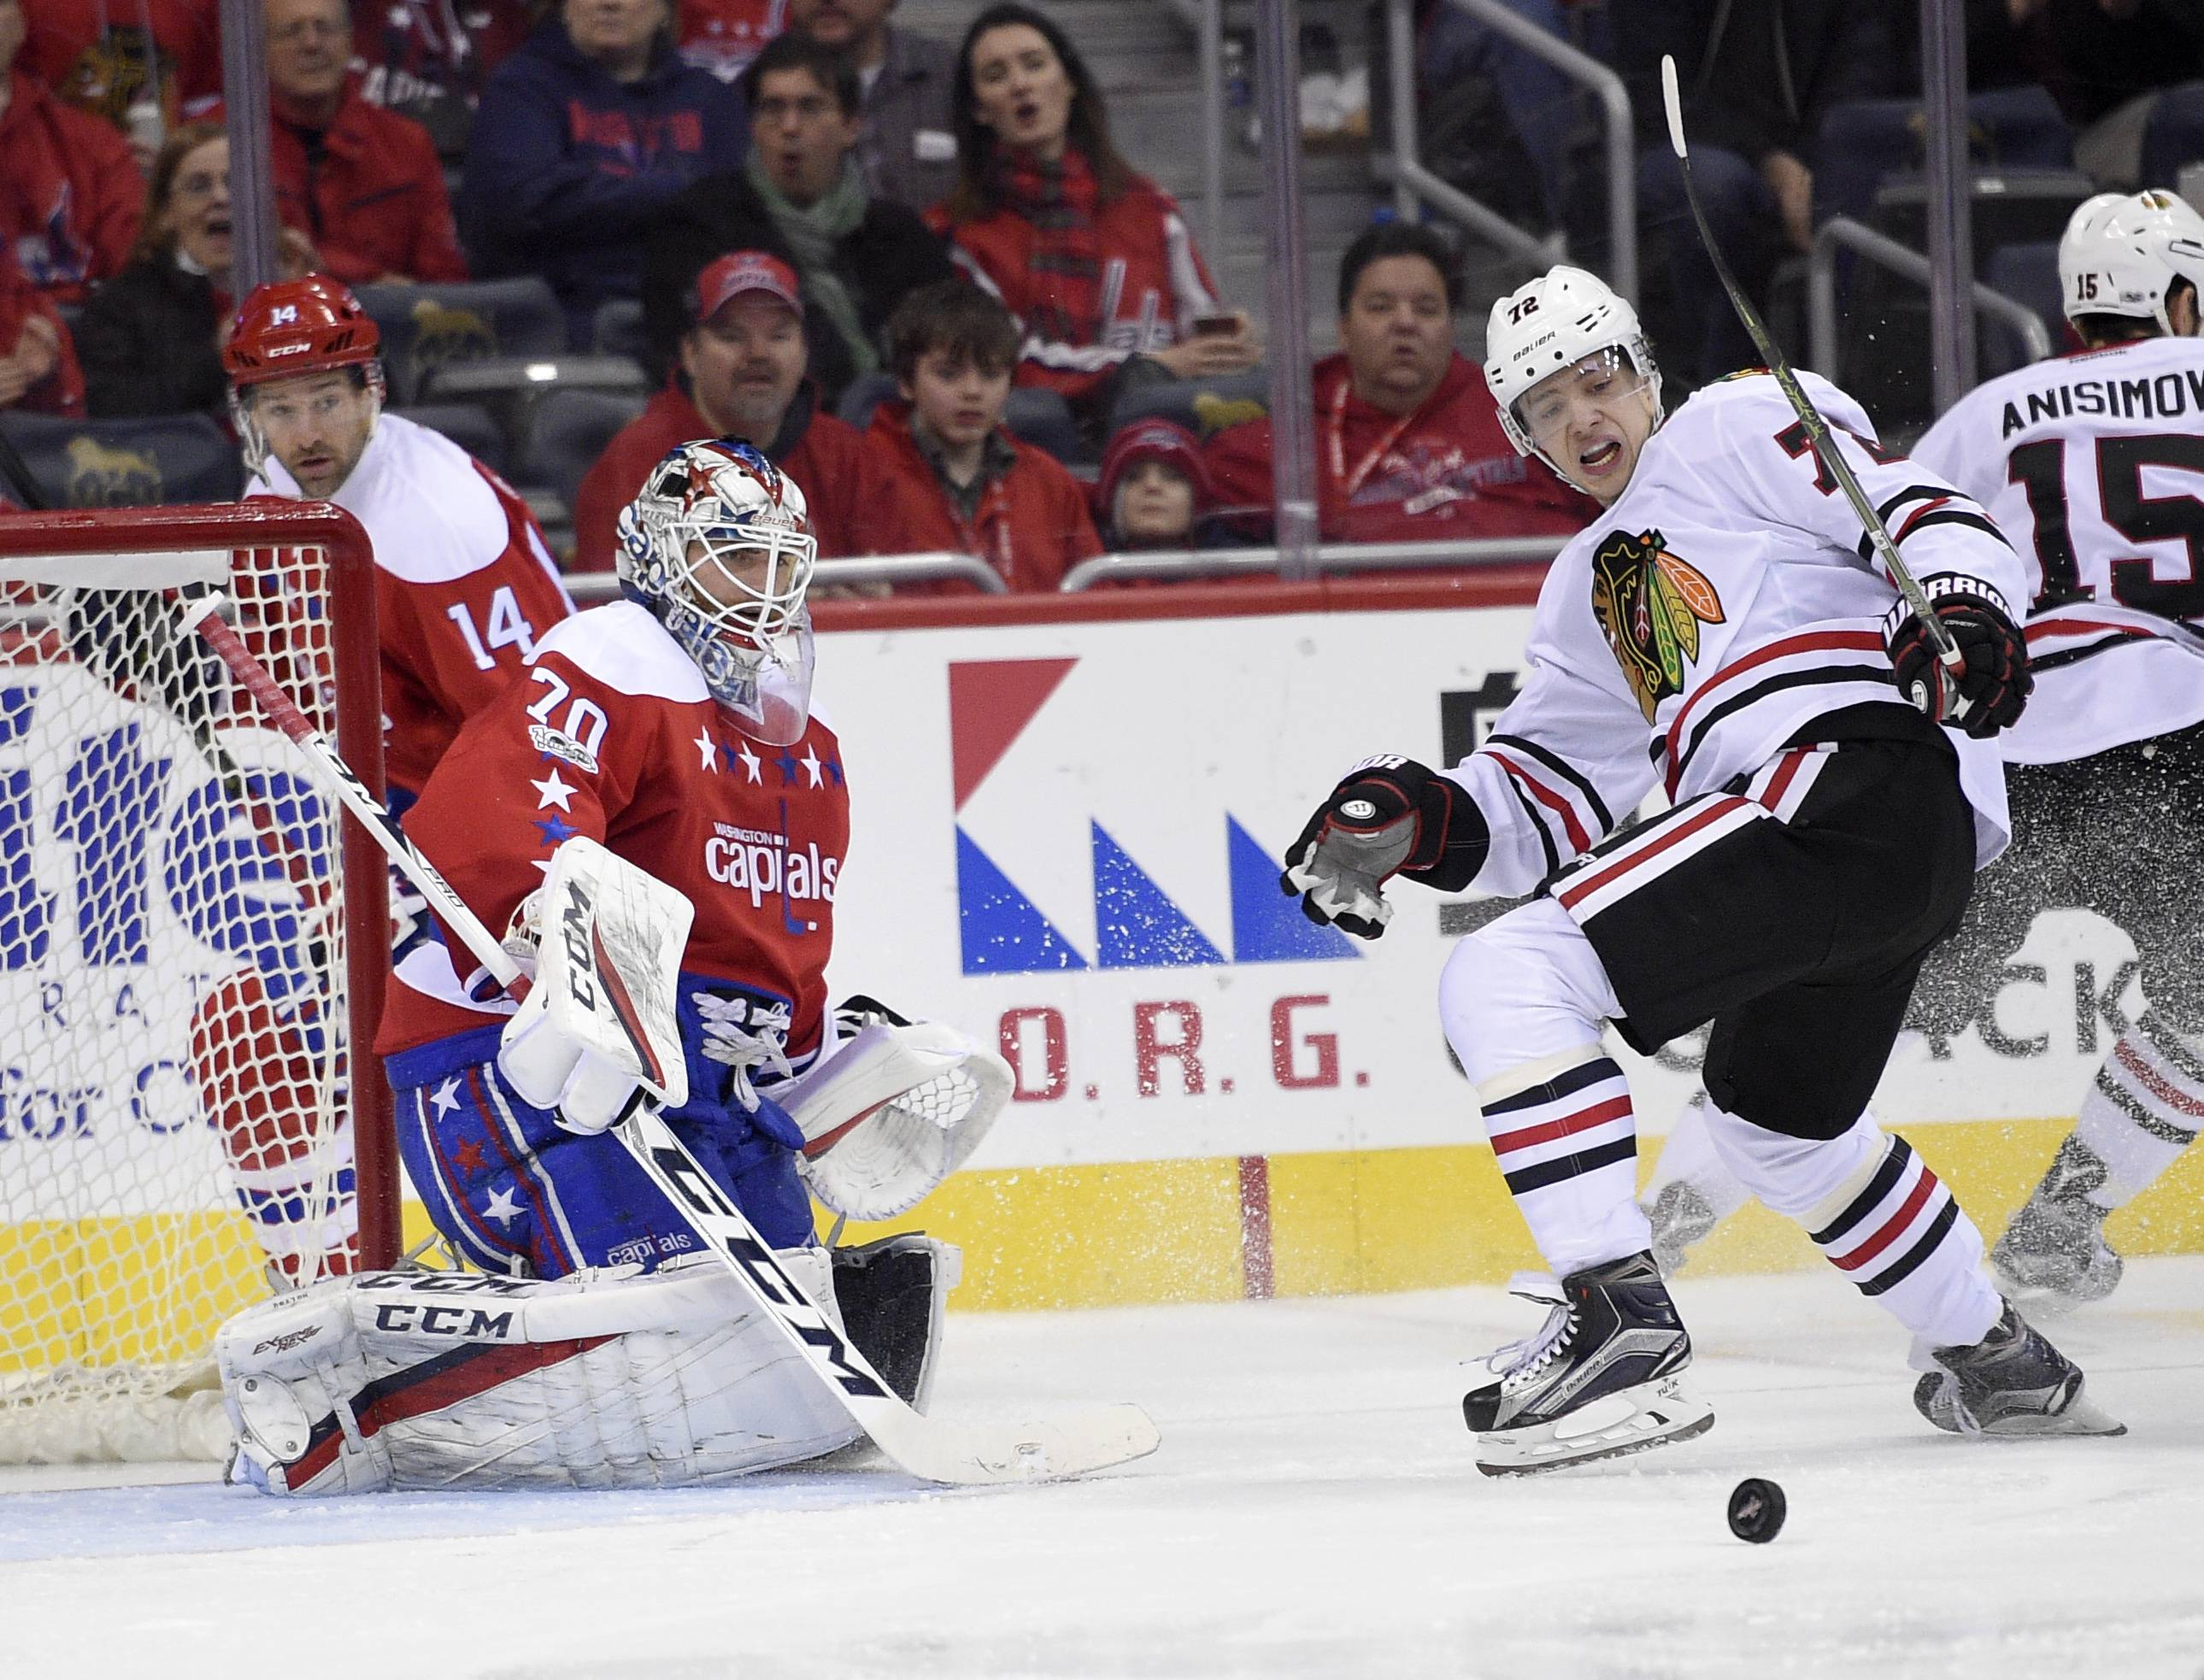 Chicago Blackhawks left wing Artemi Panarin (72), of Russia, and Washington Capitals goalie Braden Holtby (70) watch the puck during the third period of an NHL hockey game, Friday, Jan. 13, 2017, in Washington. The Capitals won 6-0. (AP Photo/Nick Wass)